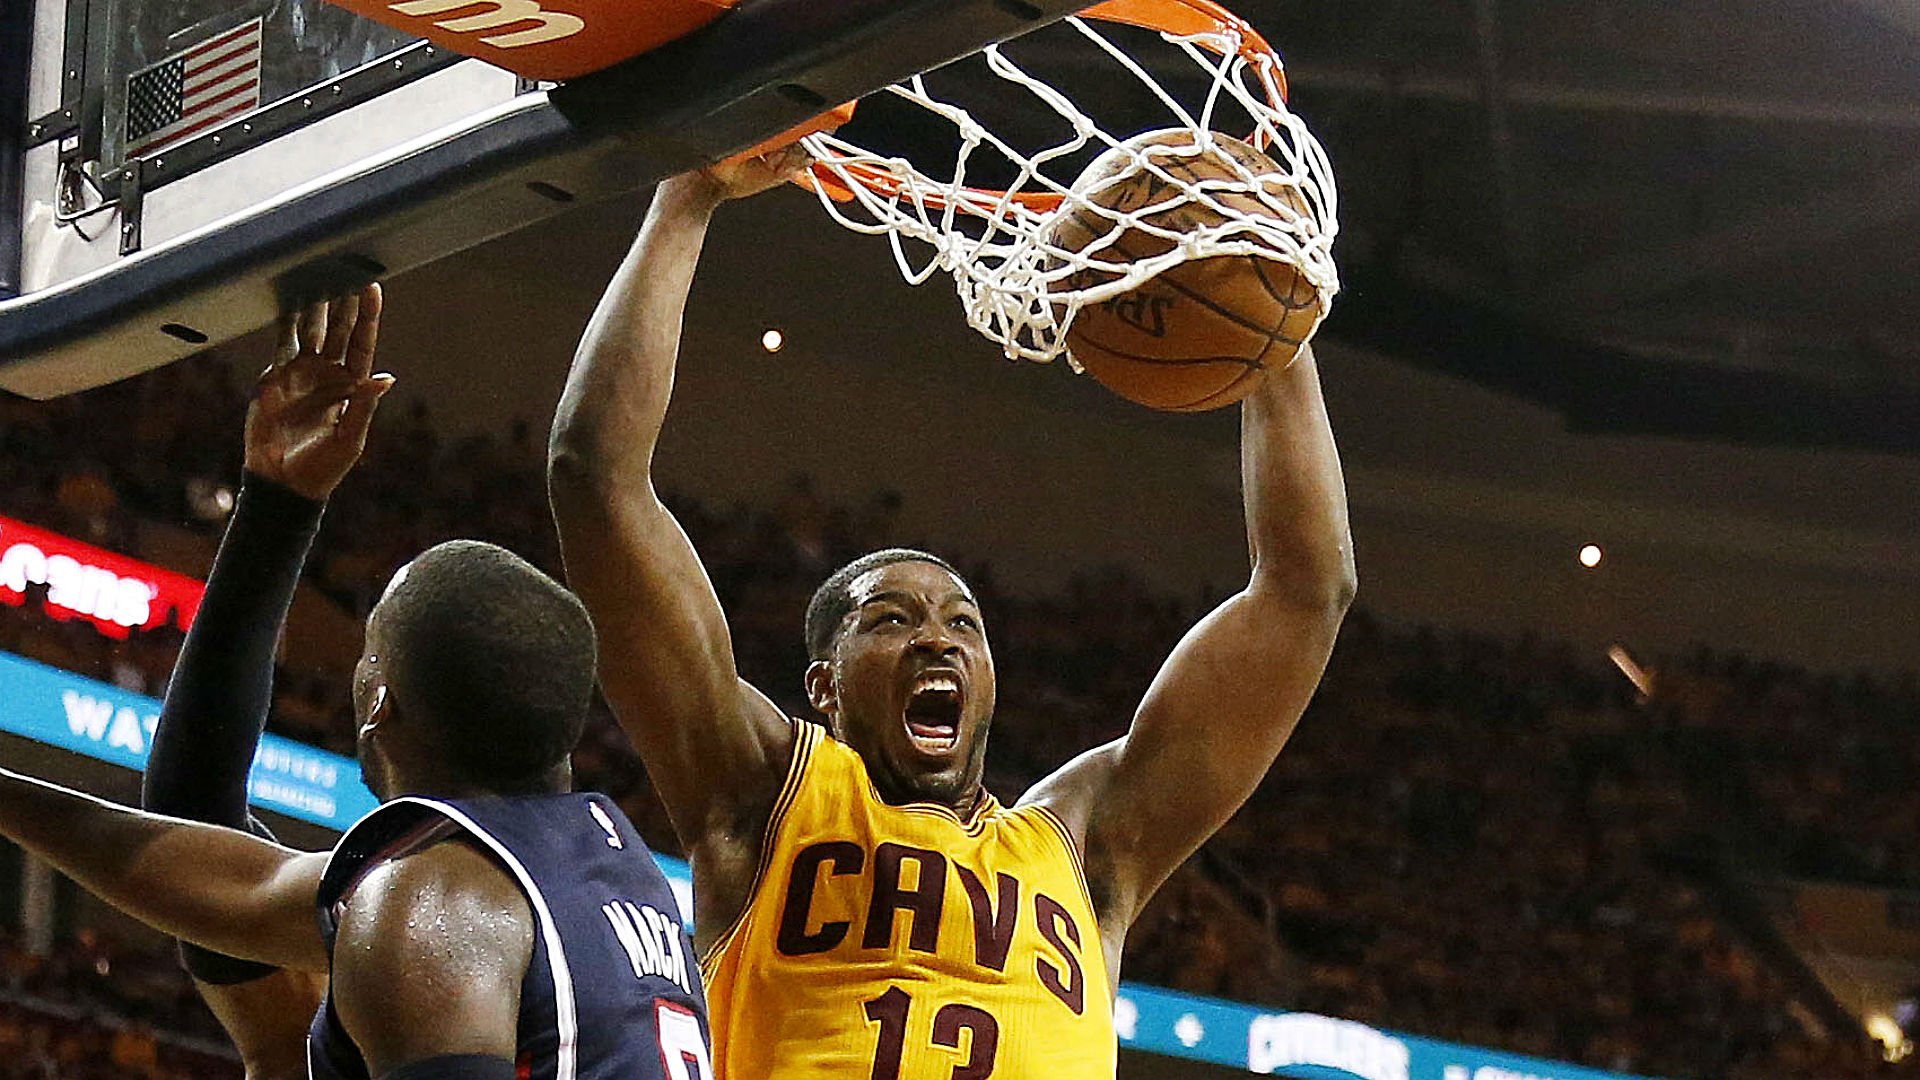 Cavaliers vs. Hawks Game 4 betting line and pick – Brooms ready in Cleveland